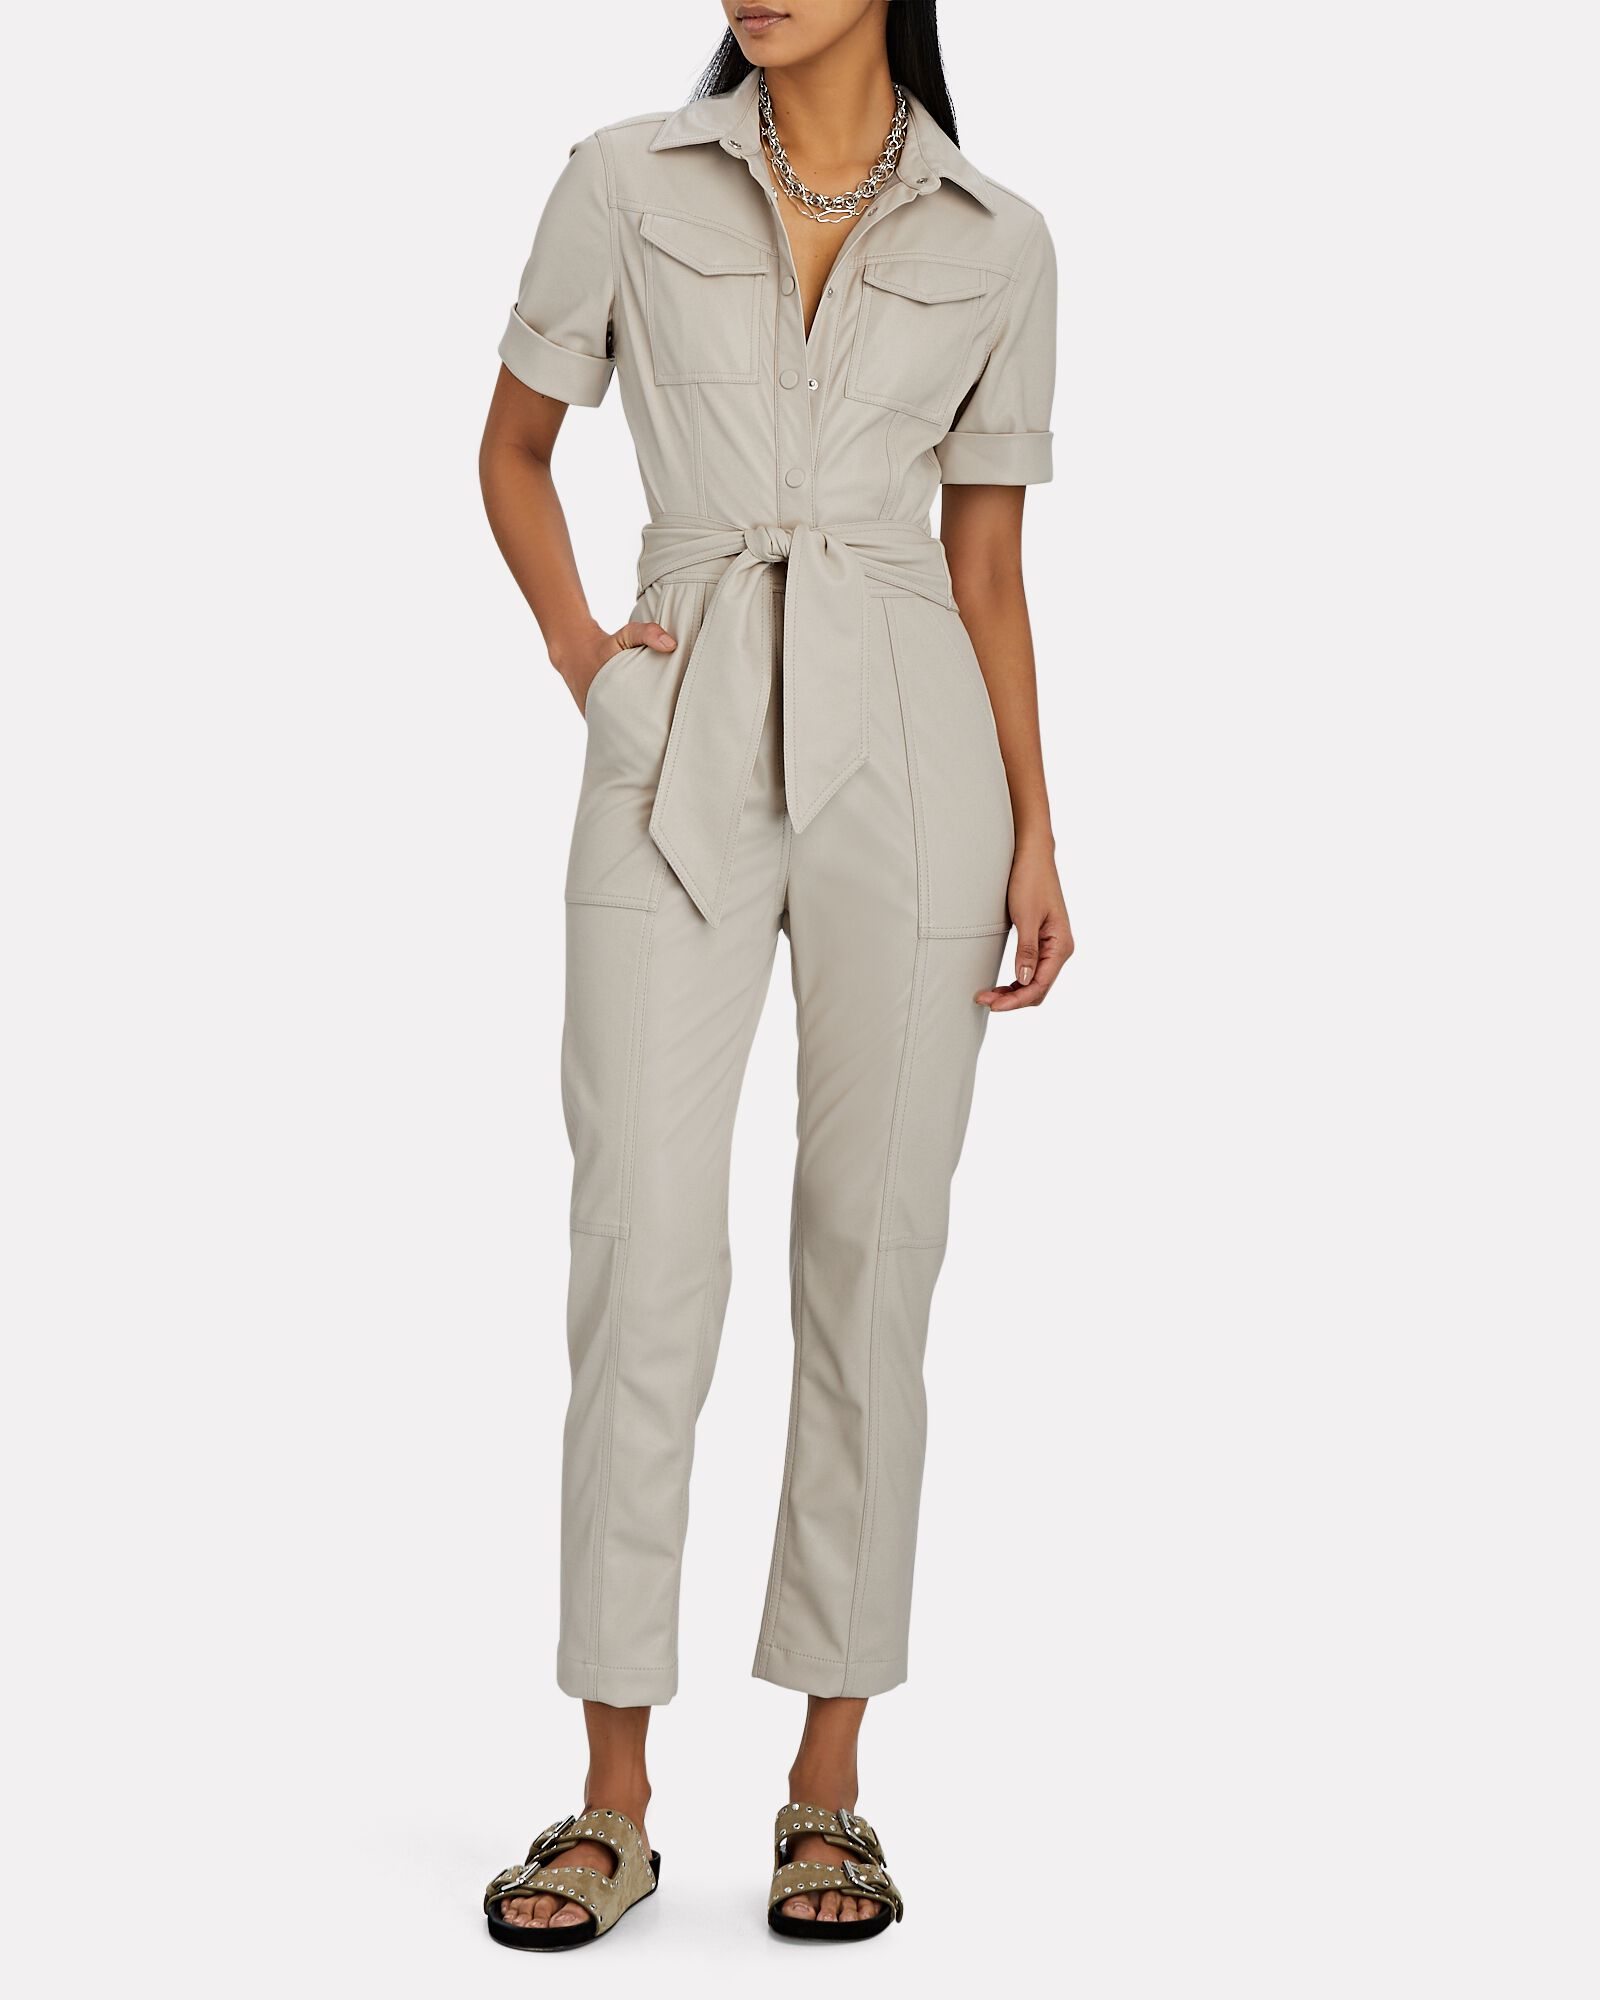 Maddy Vegan Leather Jumpsuit, IVORY, hi-res